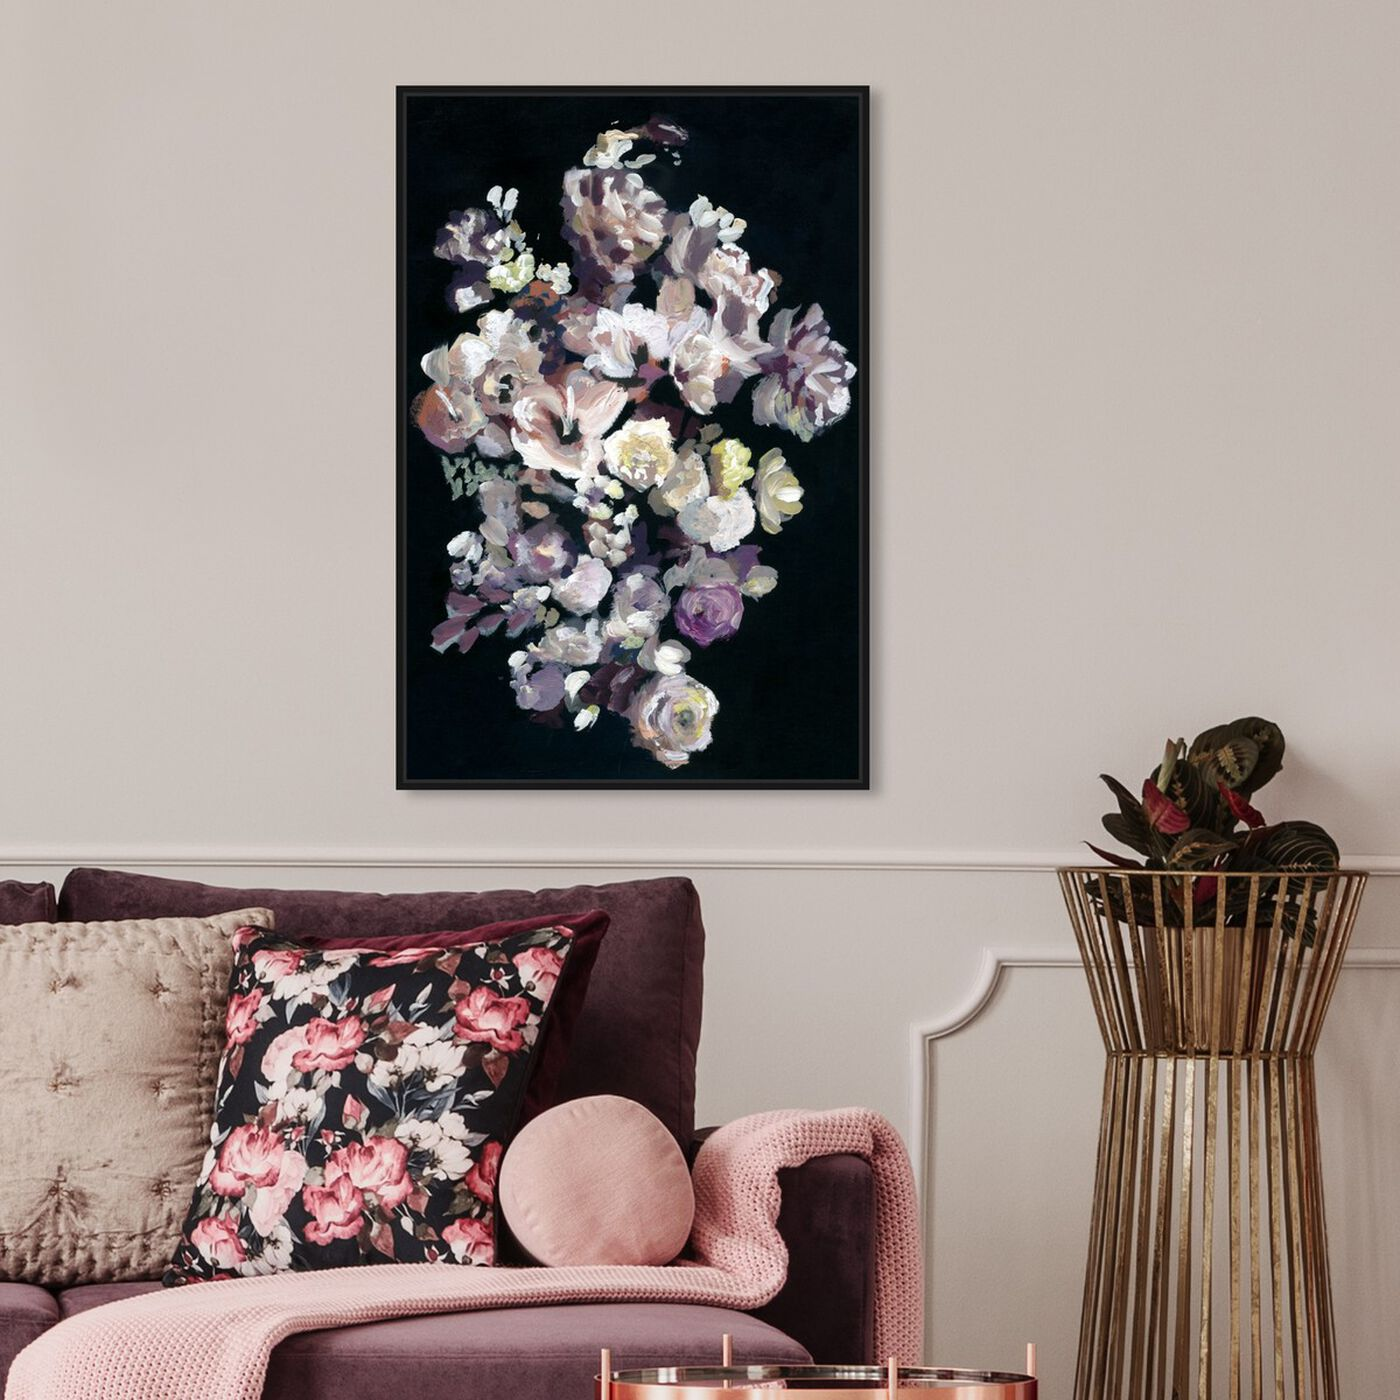 Hanging view of Beauty in Darkness featuring floral and botanical and florals art.